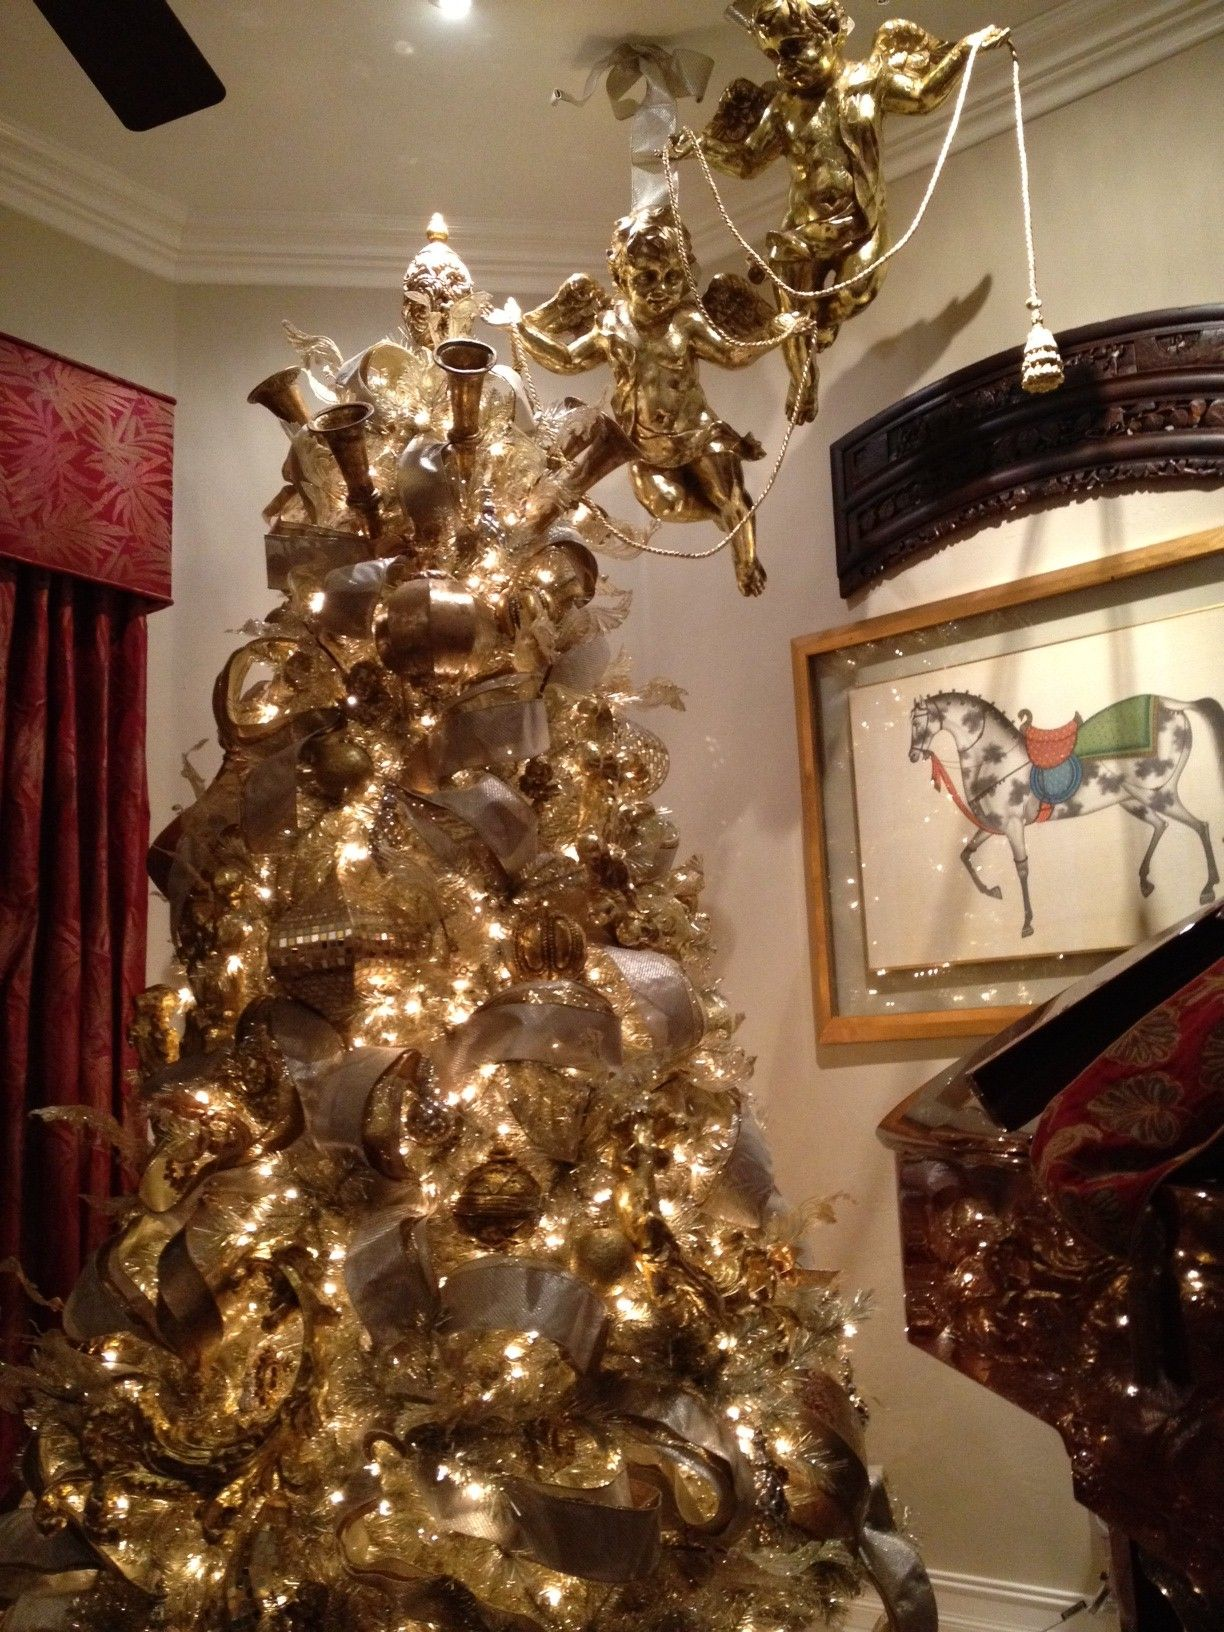 Gold Christmas Tree Exquisite Professional Decor By Nicholas